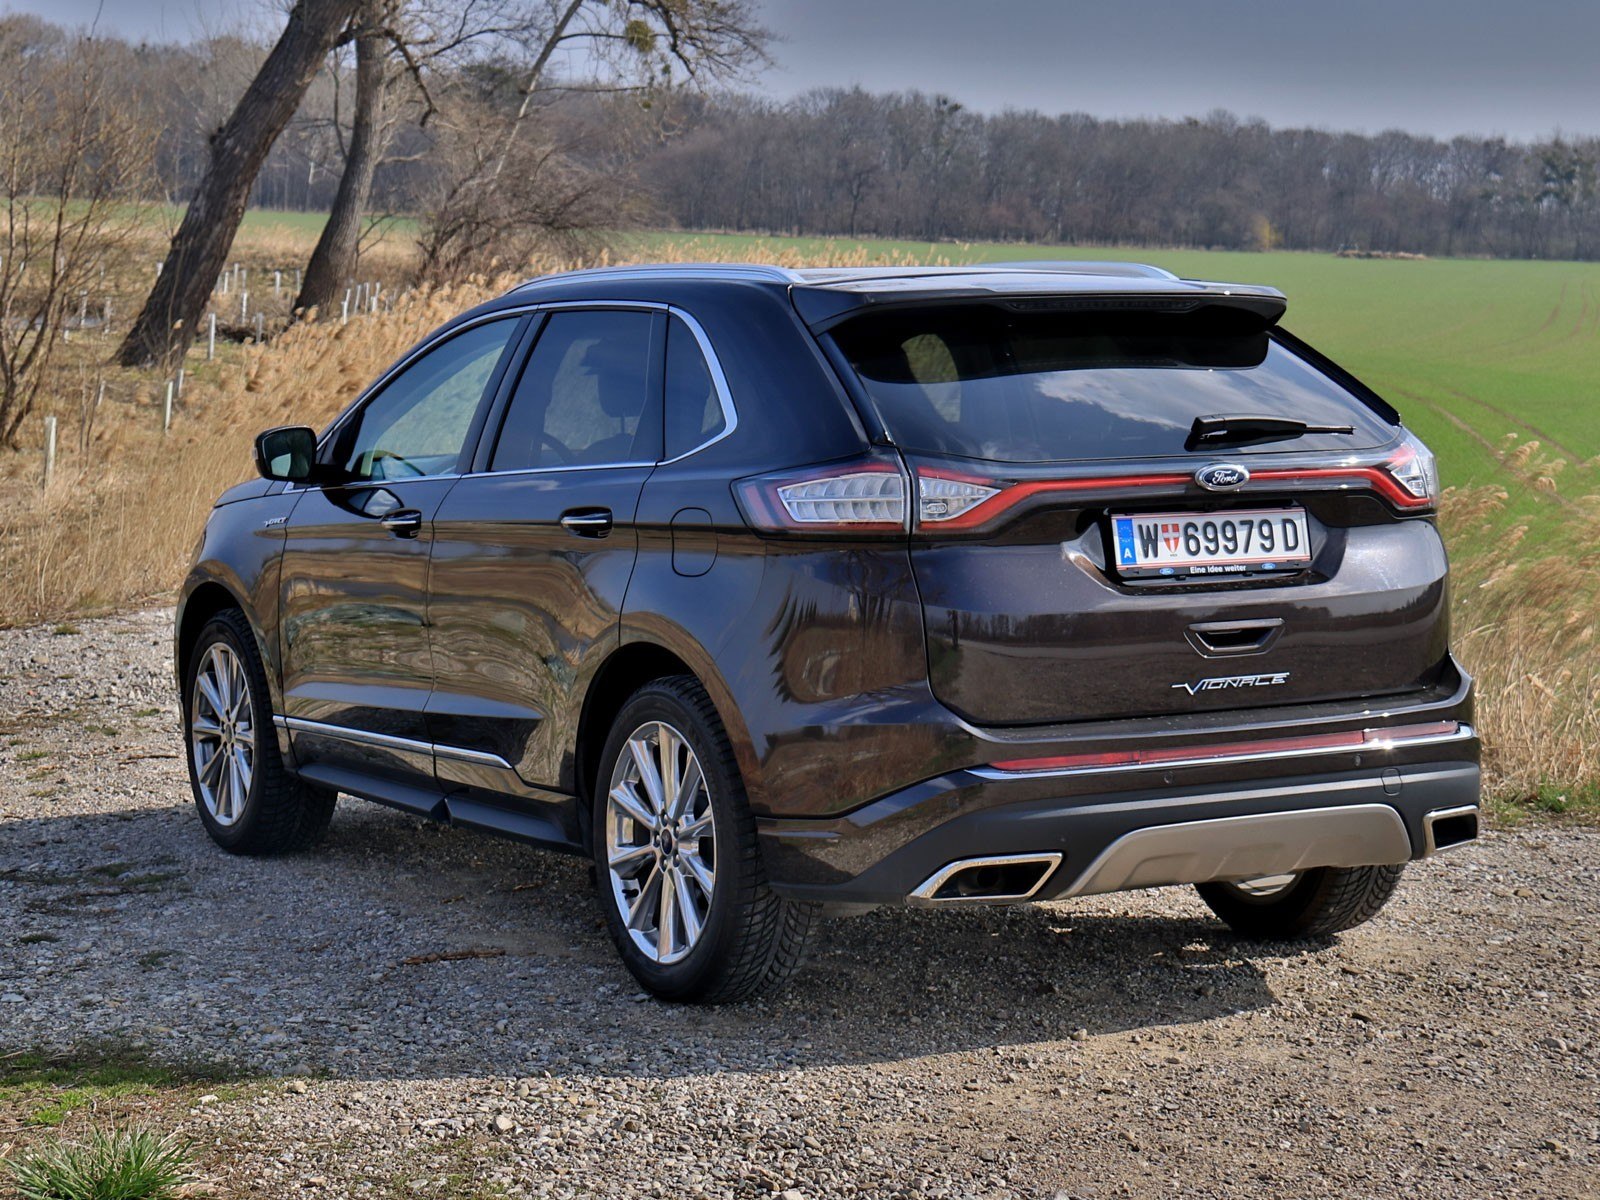 foto ford edge vignale 2 0 tdci 210 ps at awd testbericht vom artikel ford edge vignale